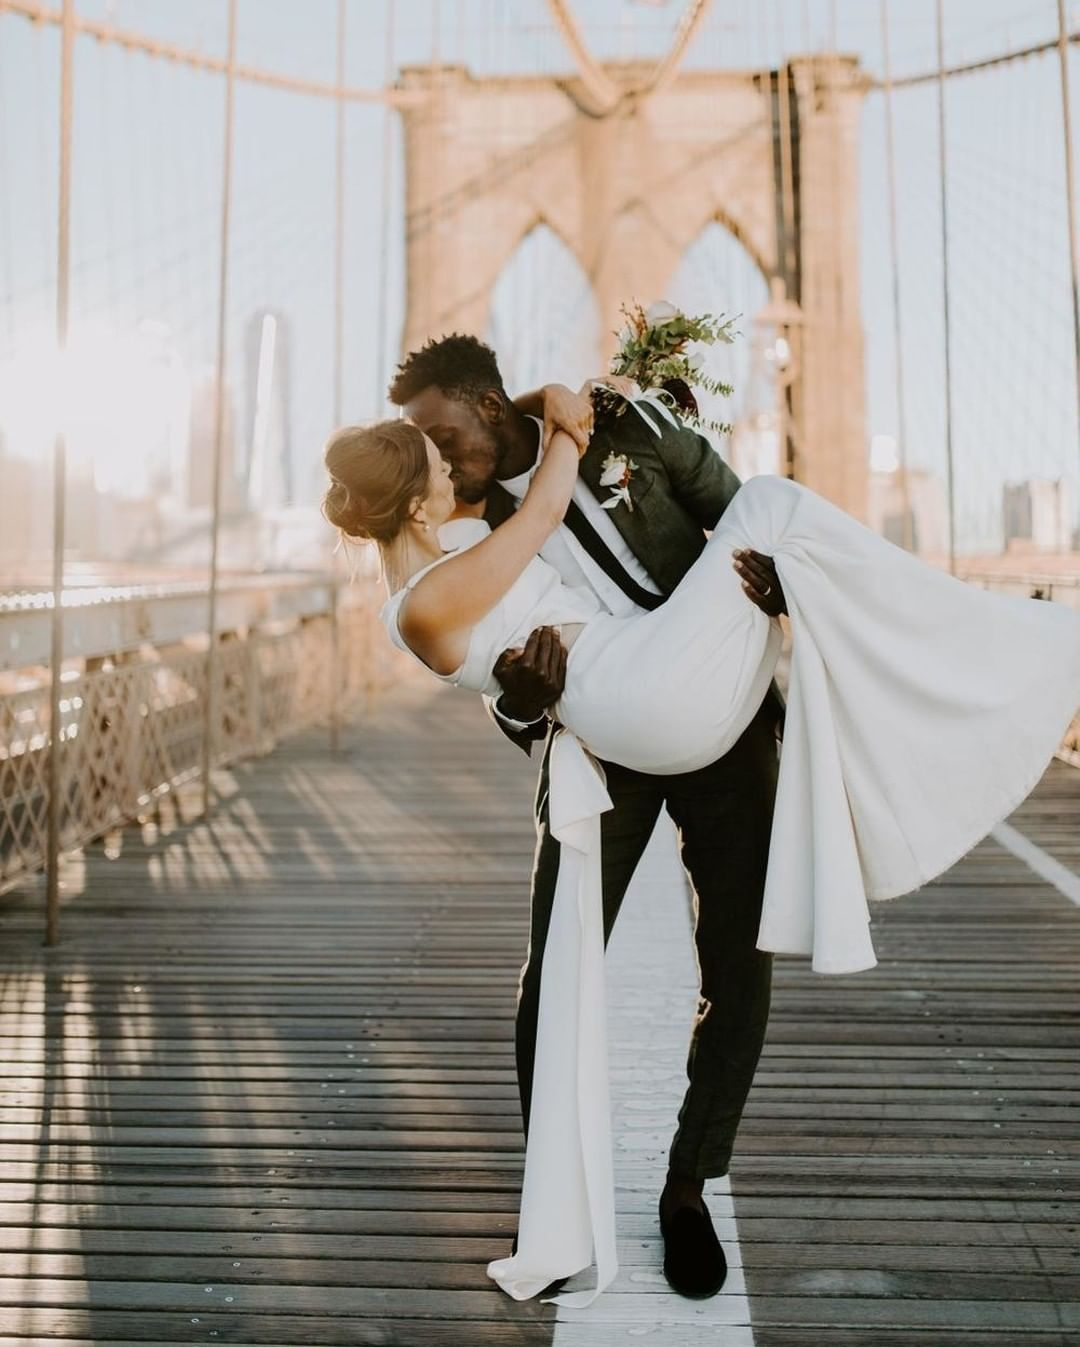 How-to-Manage-First-Dance-Wedding-Jitters-Bridal-Musings-DJ-Malike-4 How To Manage Wedding First Dance Jitters